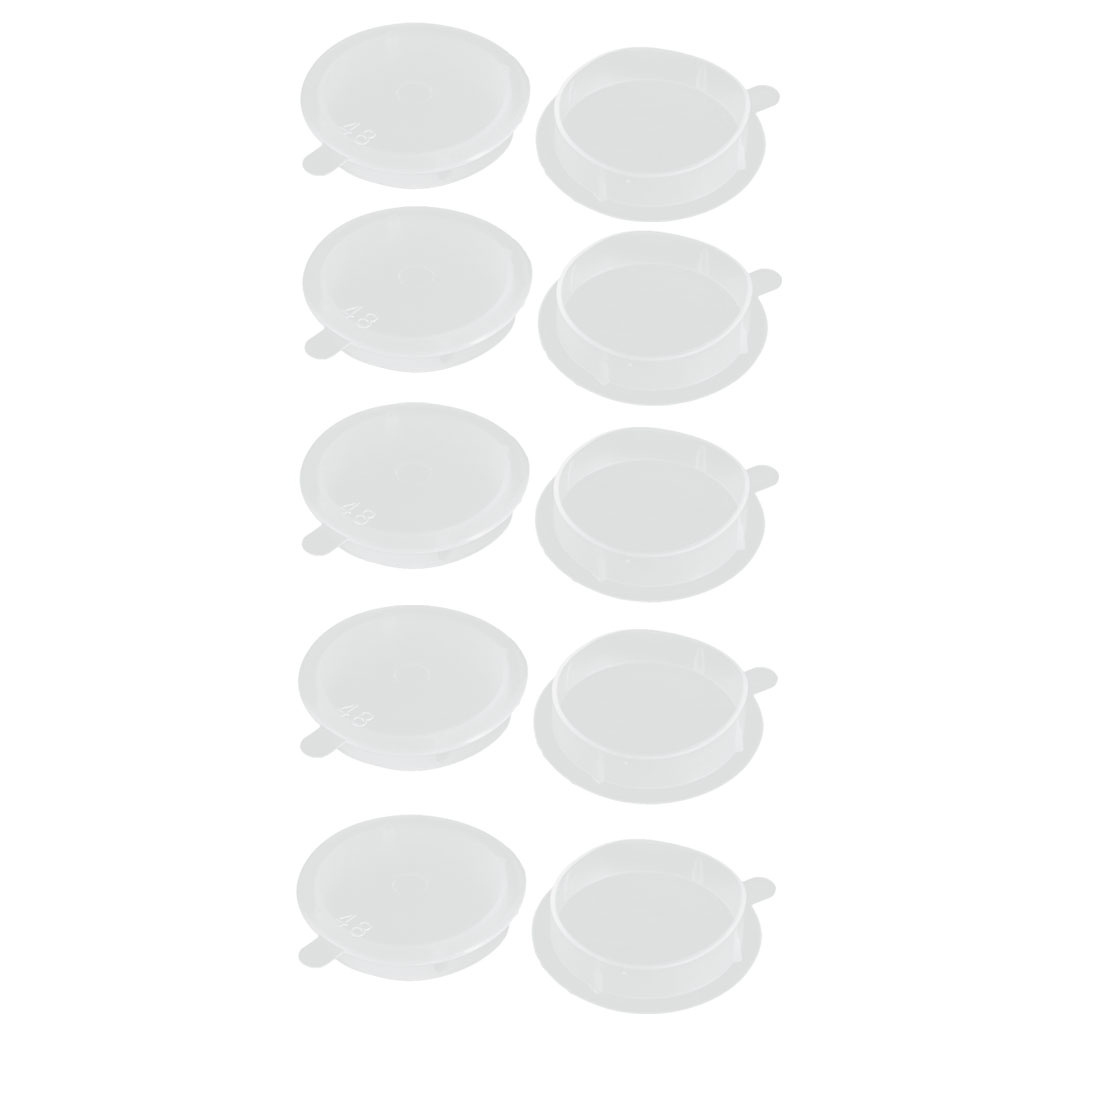 10pcs M48 PE Flat Blanking End Tube Insert Cap Round Cover Transparent